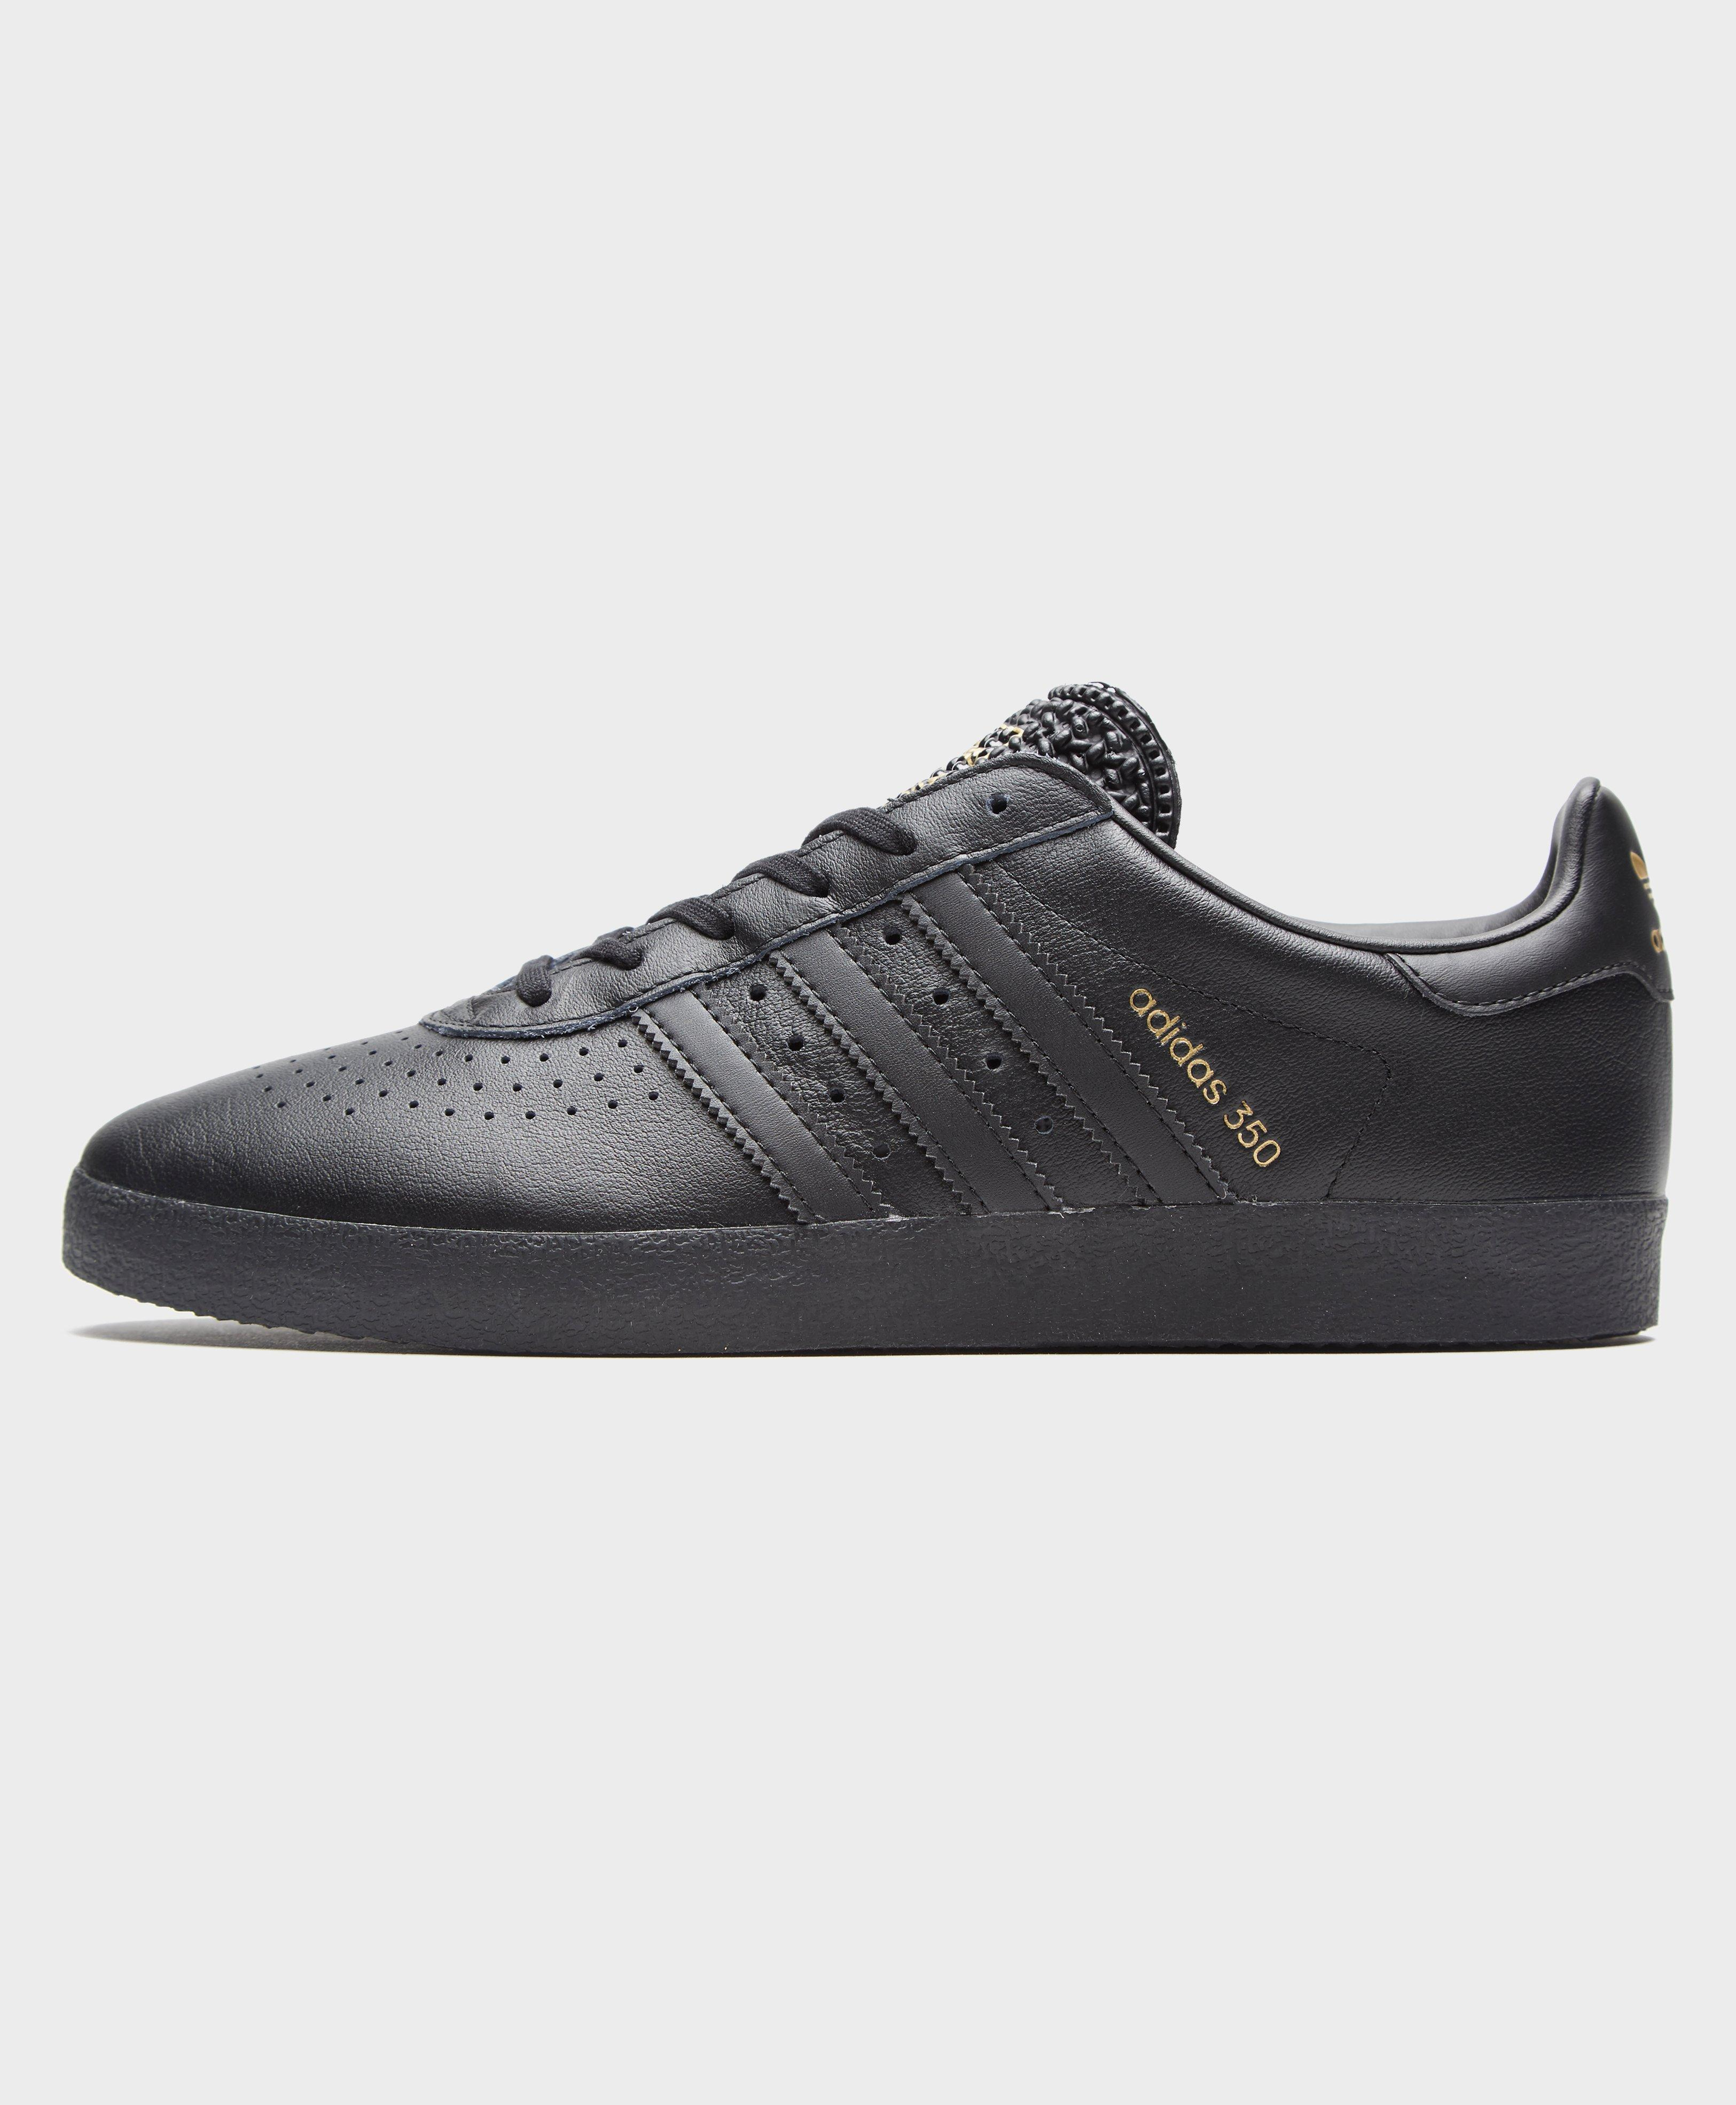 adidas originals stan smith black suede adidas outlet locations apparel save shoes